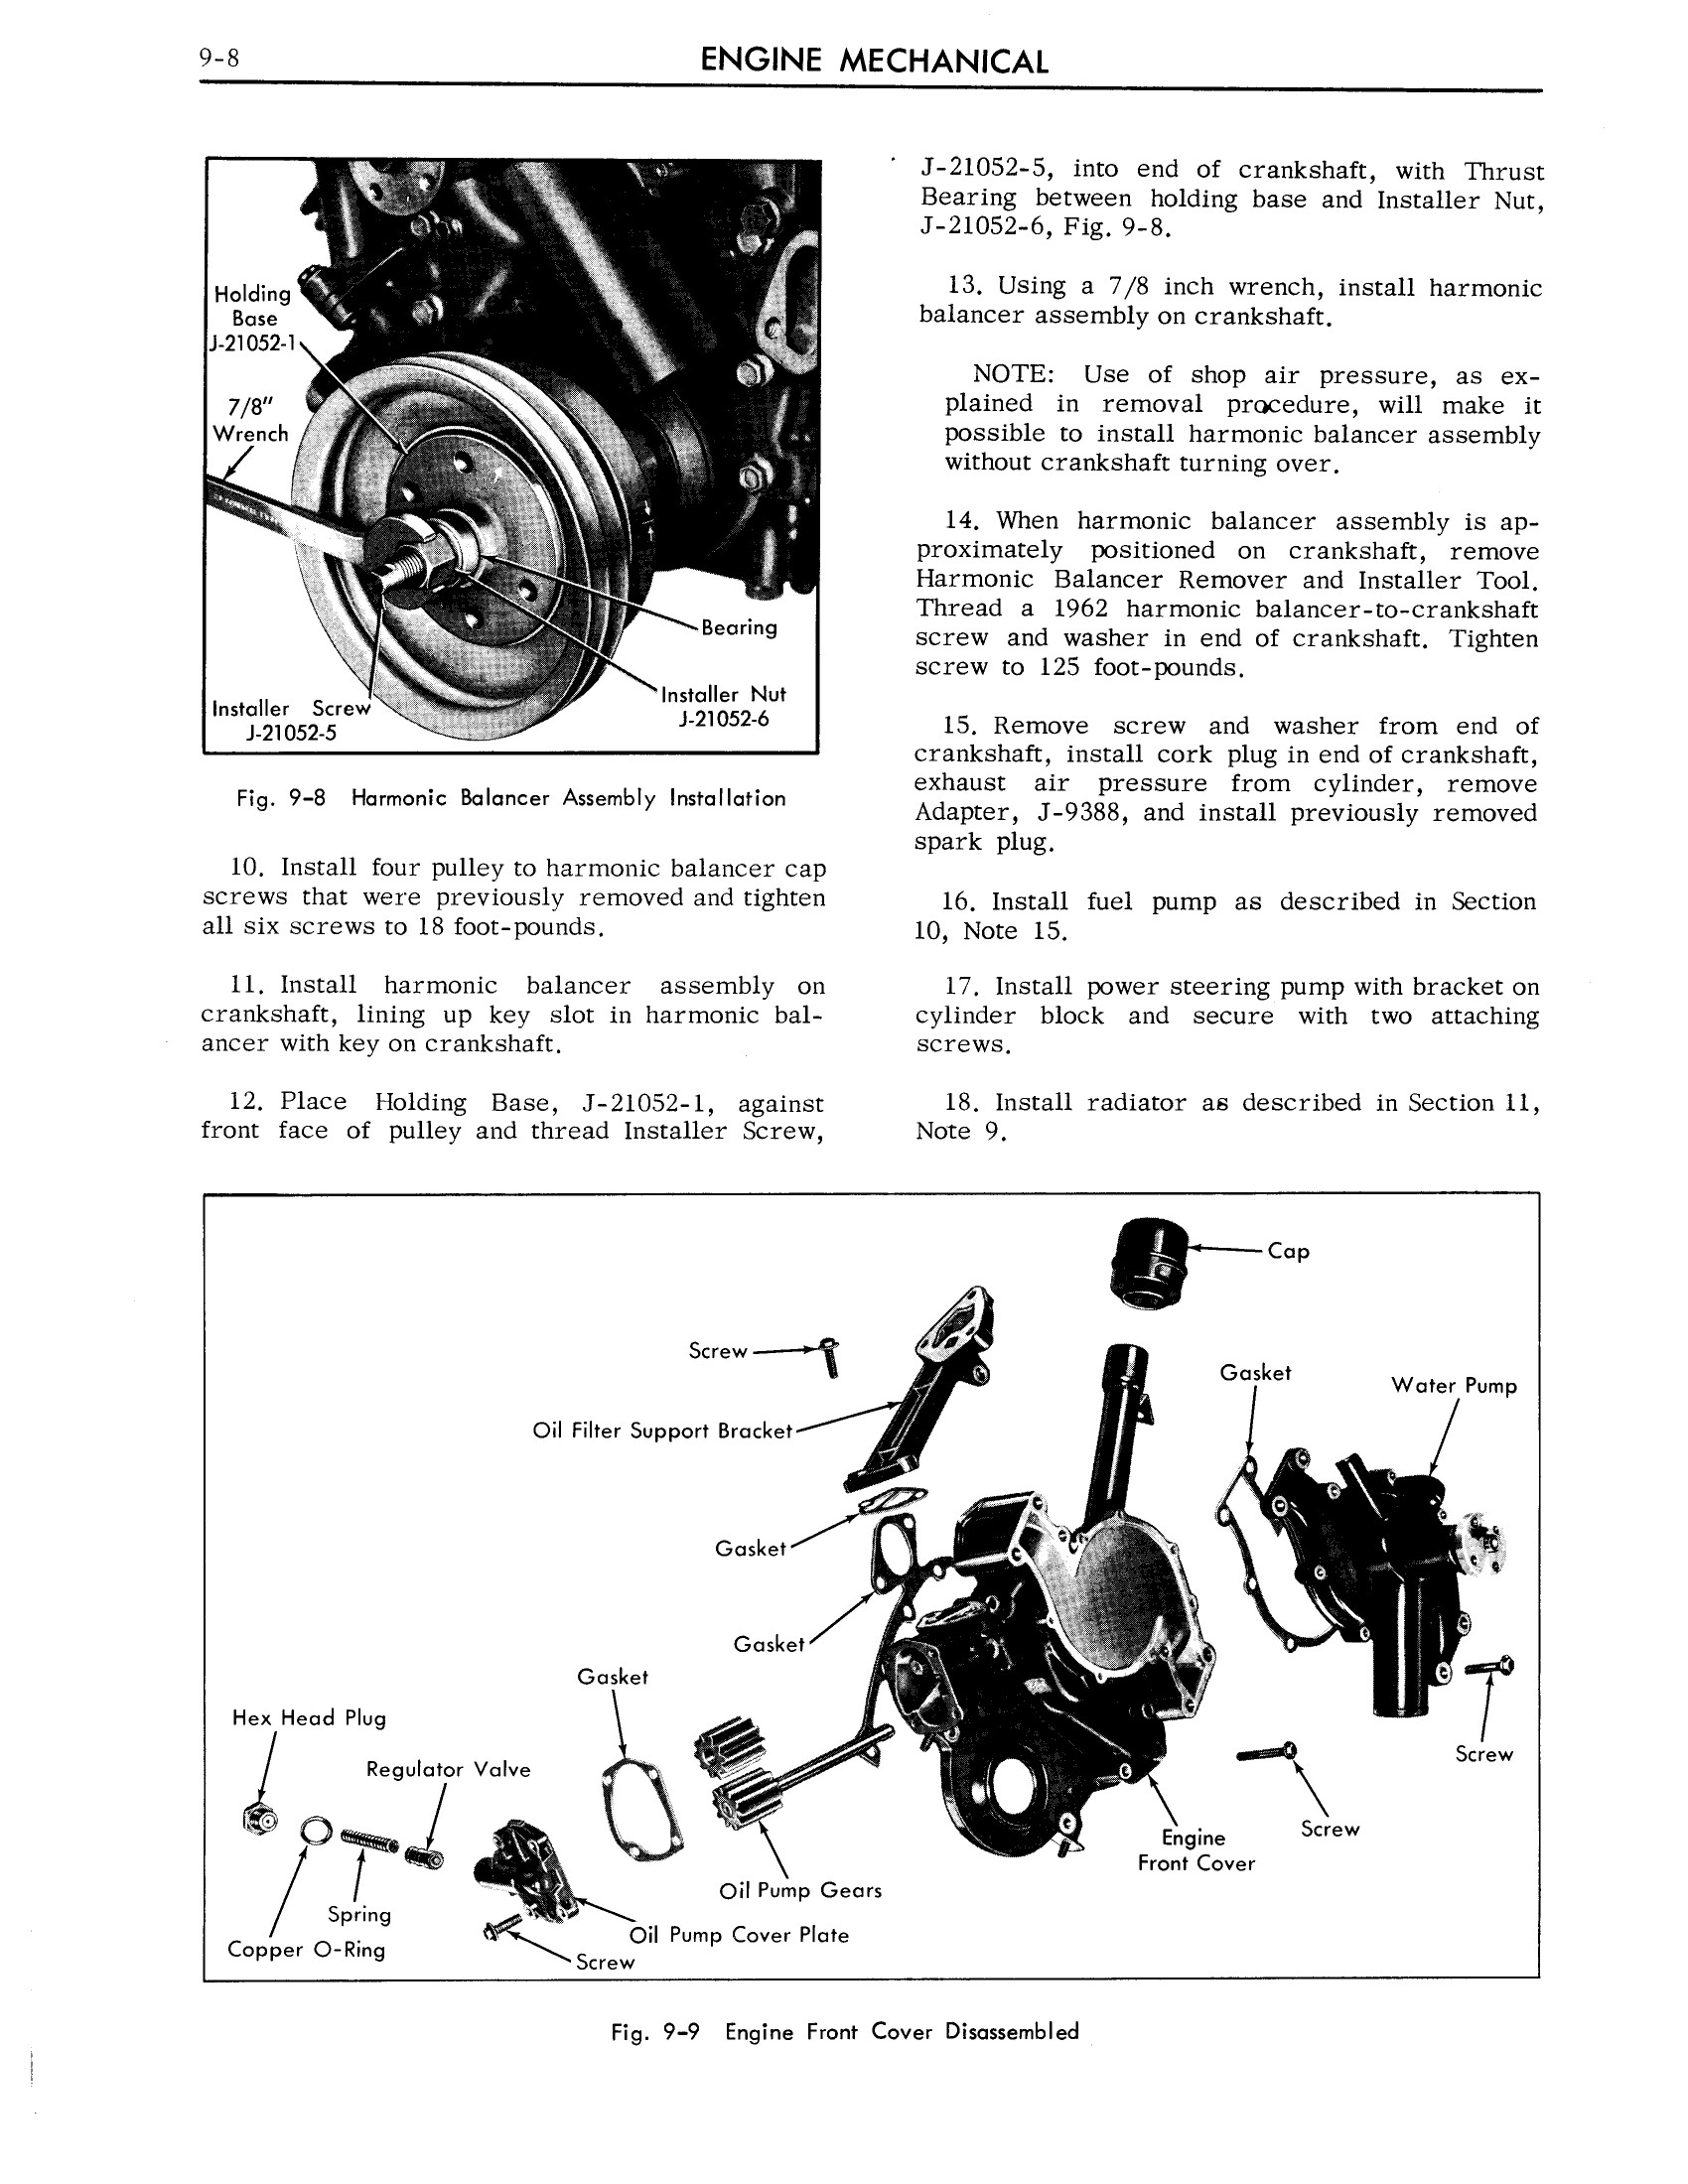 1963 Cadillac Shop Manual- Engine Mechanical Page 8 of 42